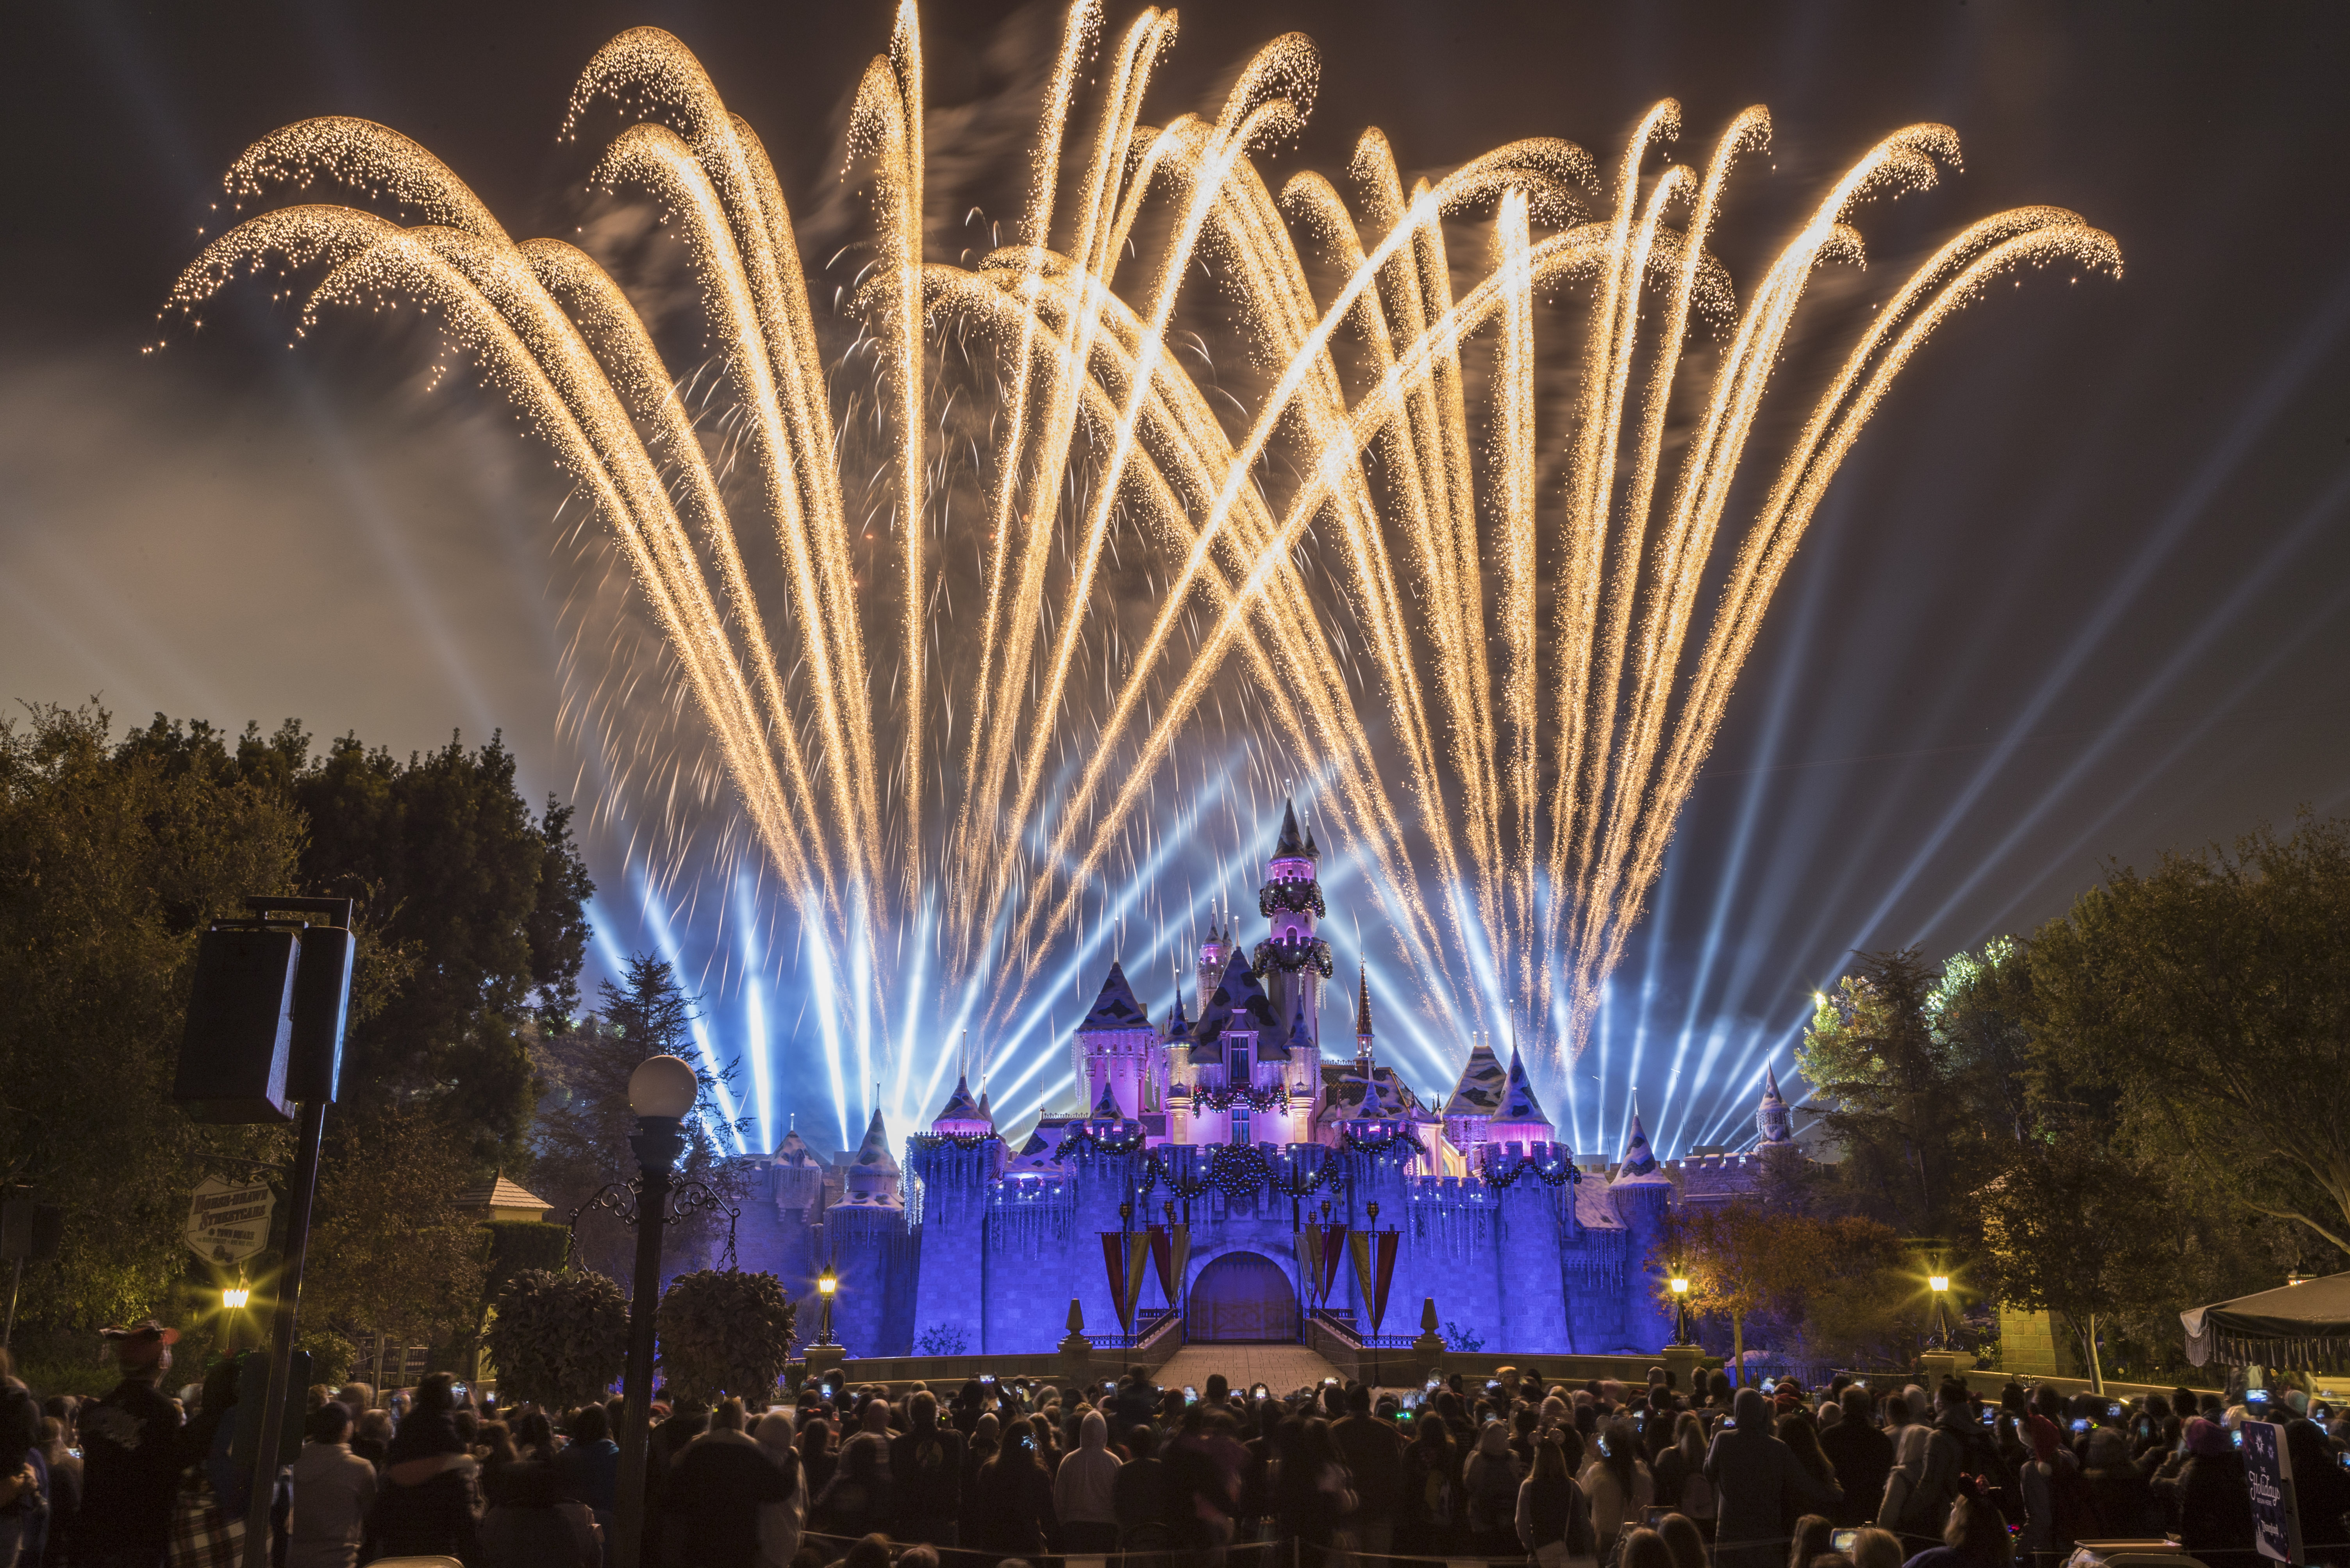 Disneyland holiday fireworks